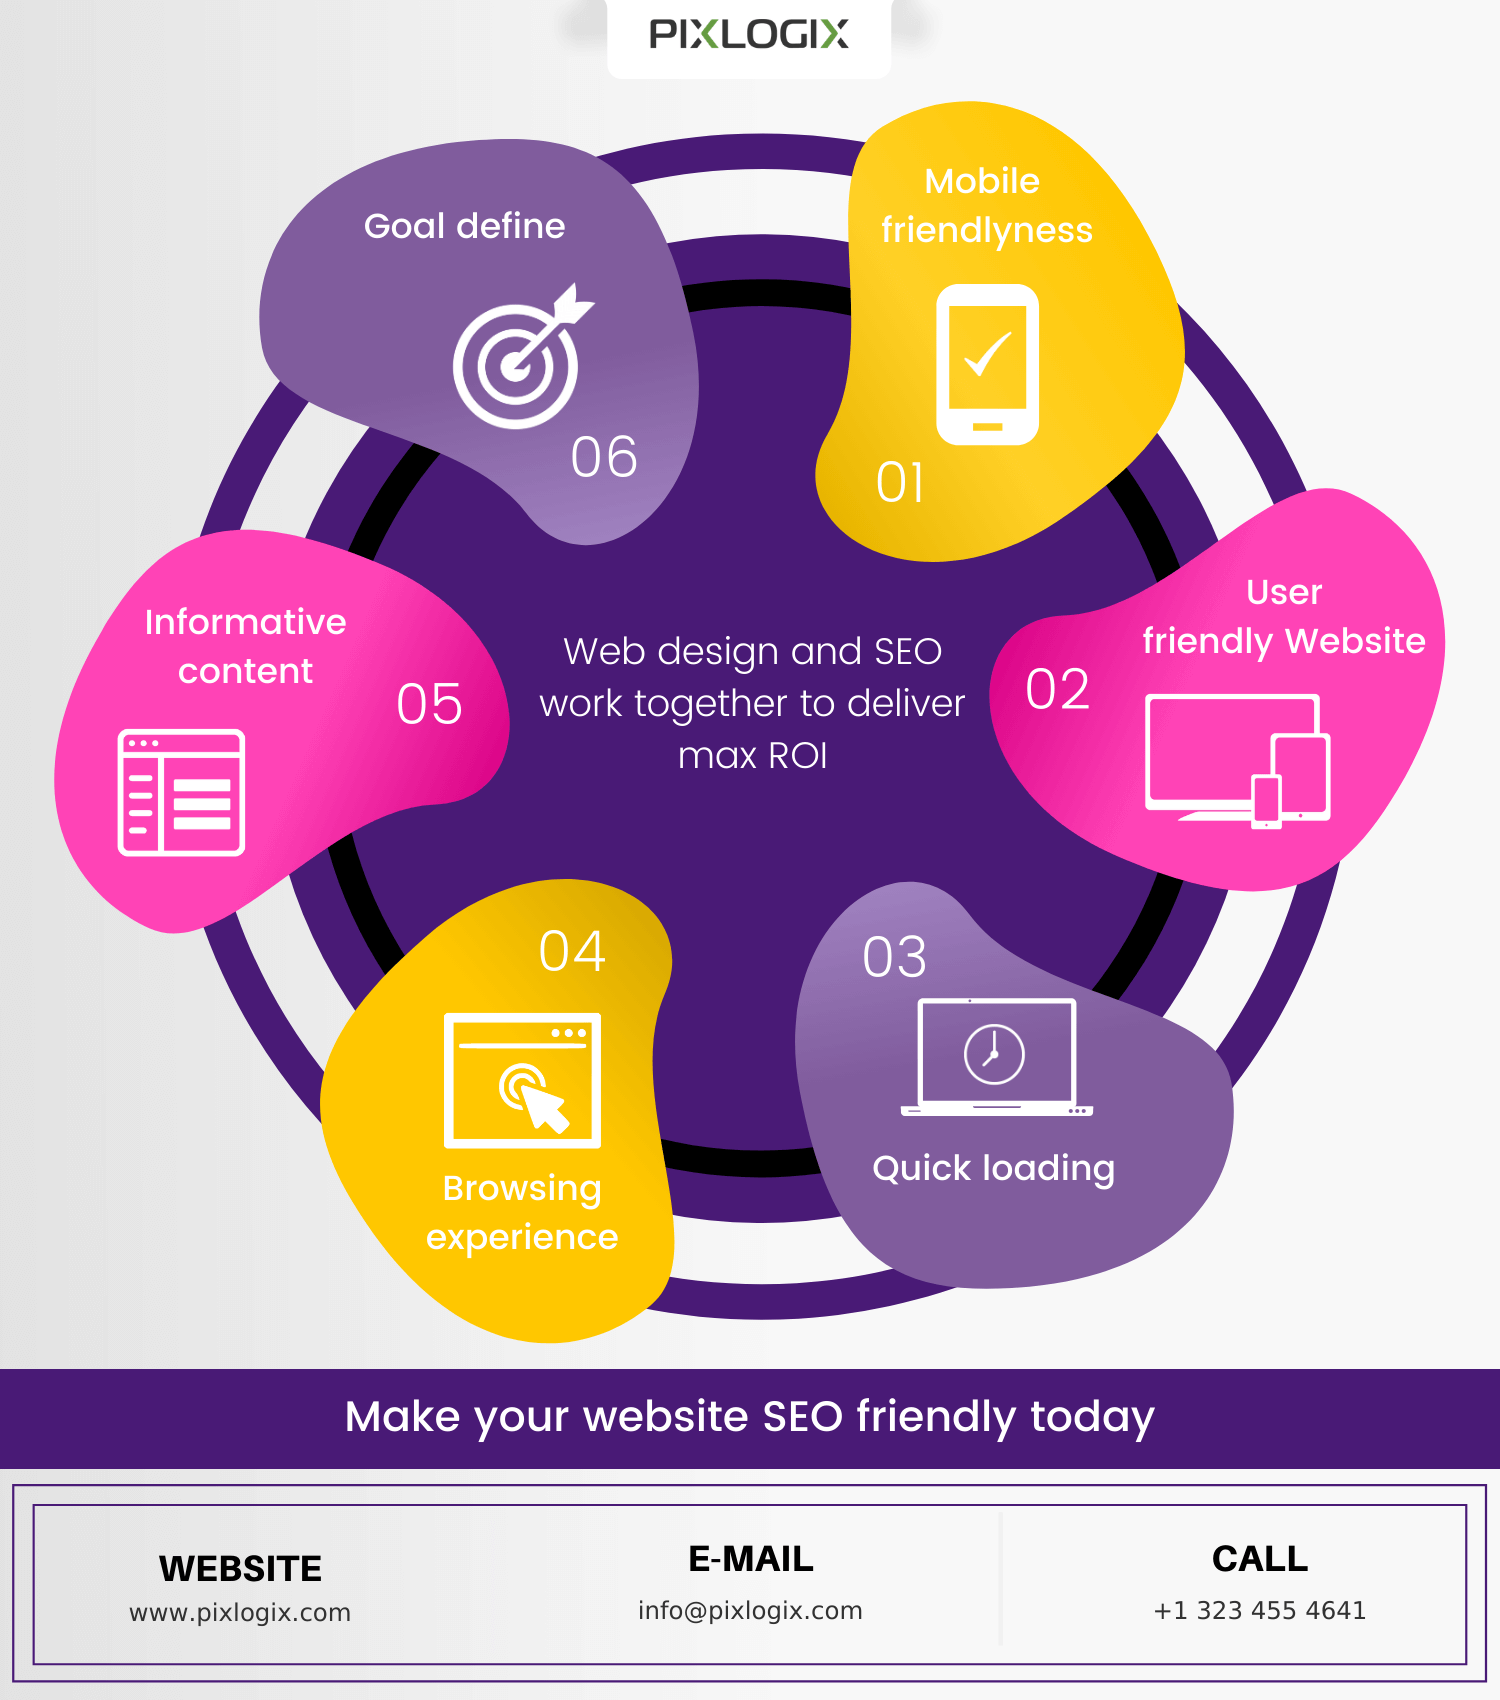 How can Web design and SEO work together to deliver max ROI? Infographic